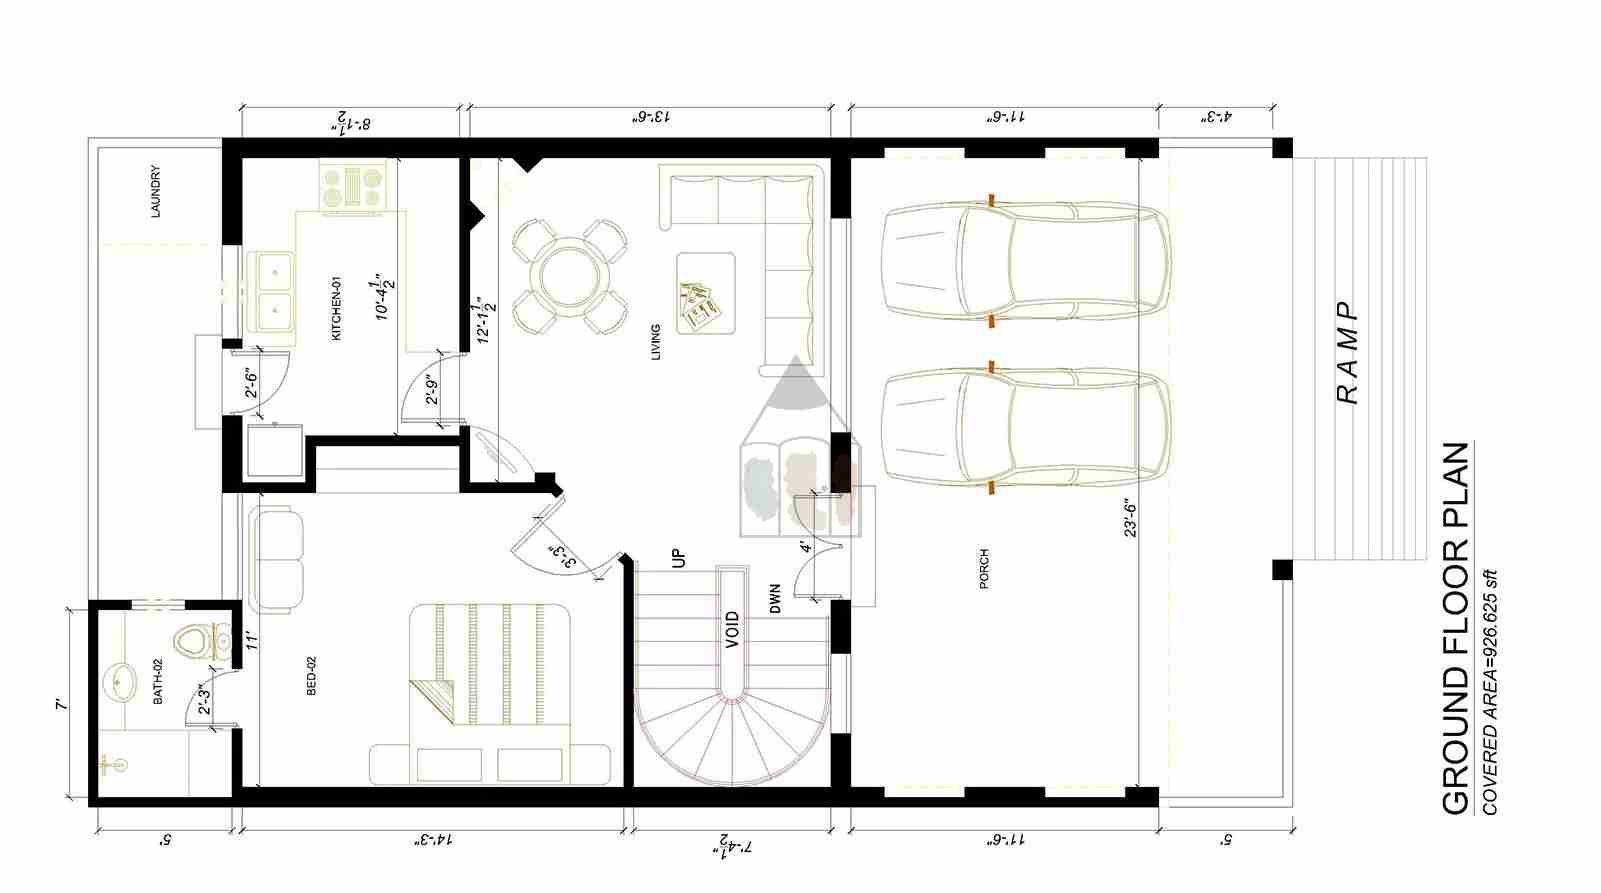 Related image marla house plan plans blueprints for homes also in pinterest rh